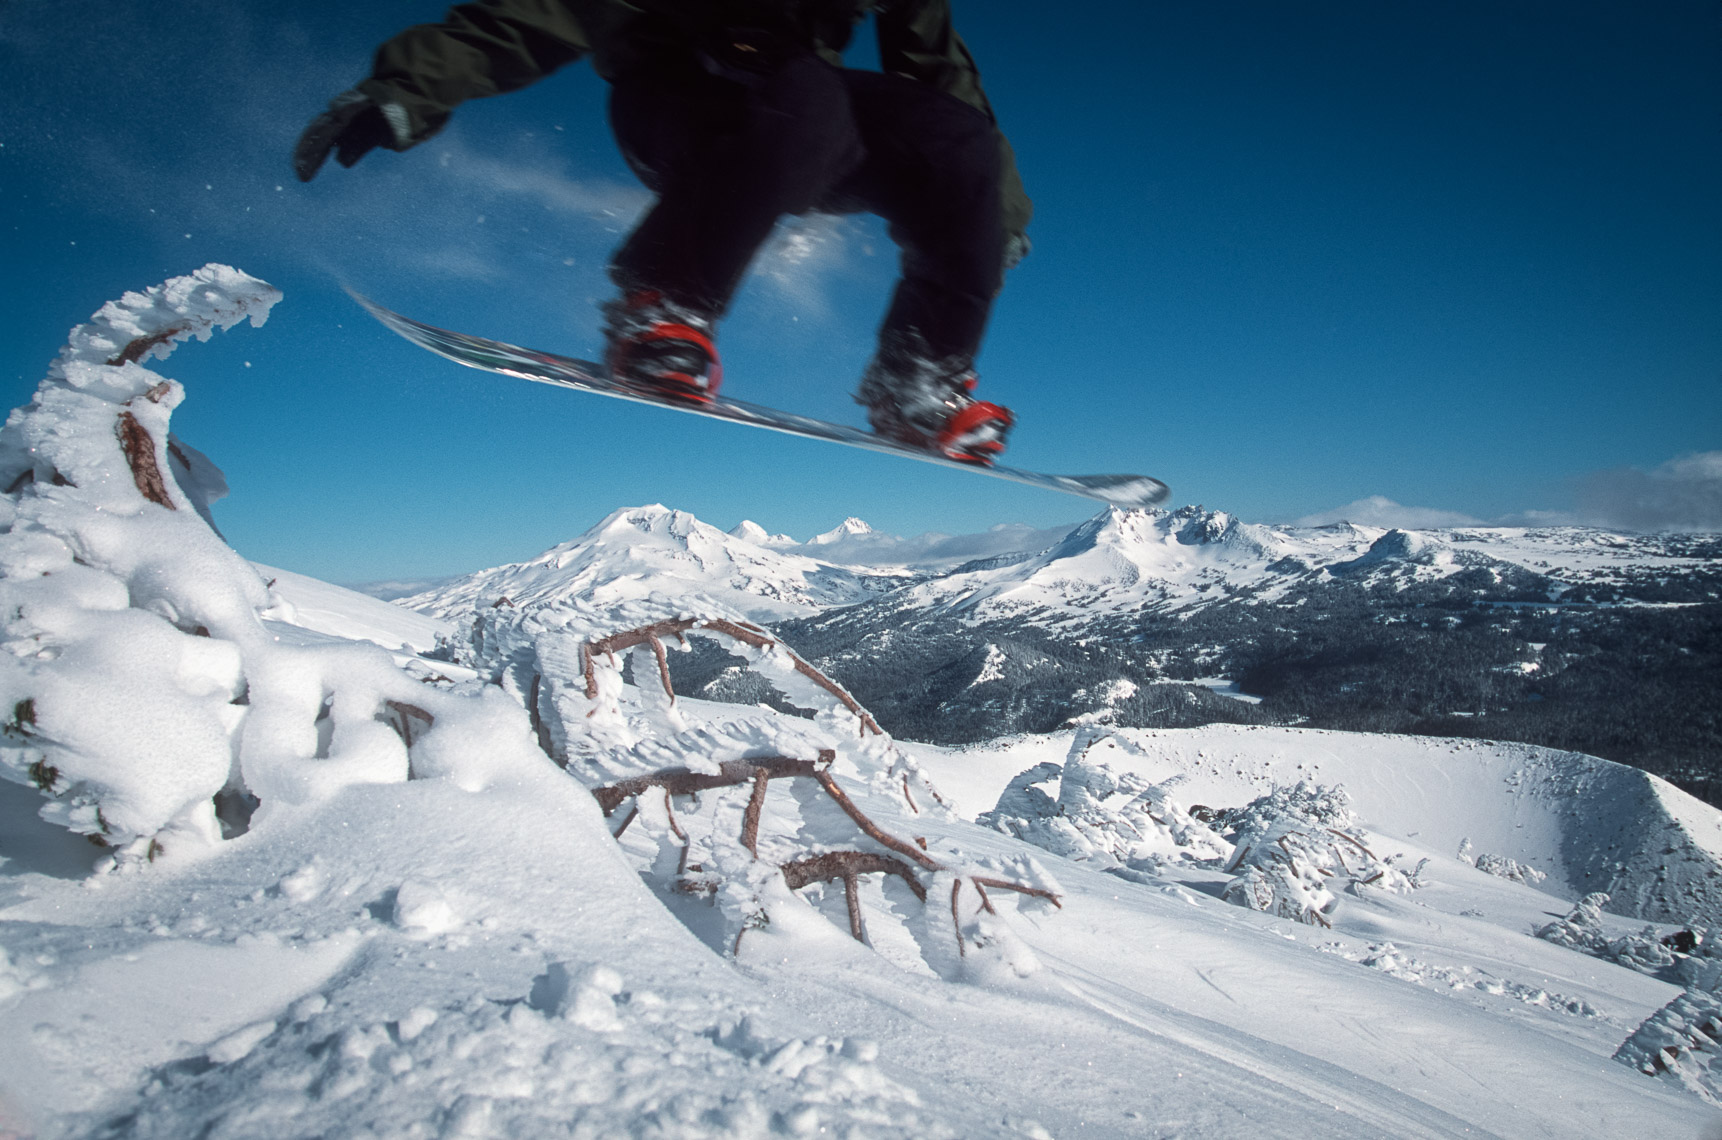 Snowboarder on Mt. Bachelor